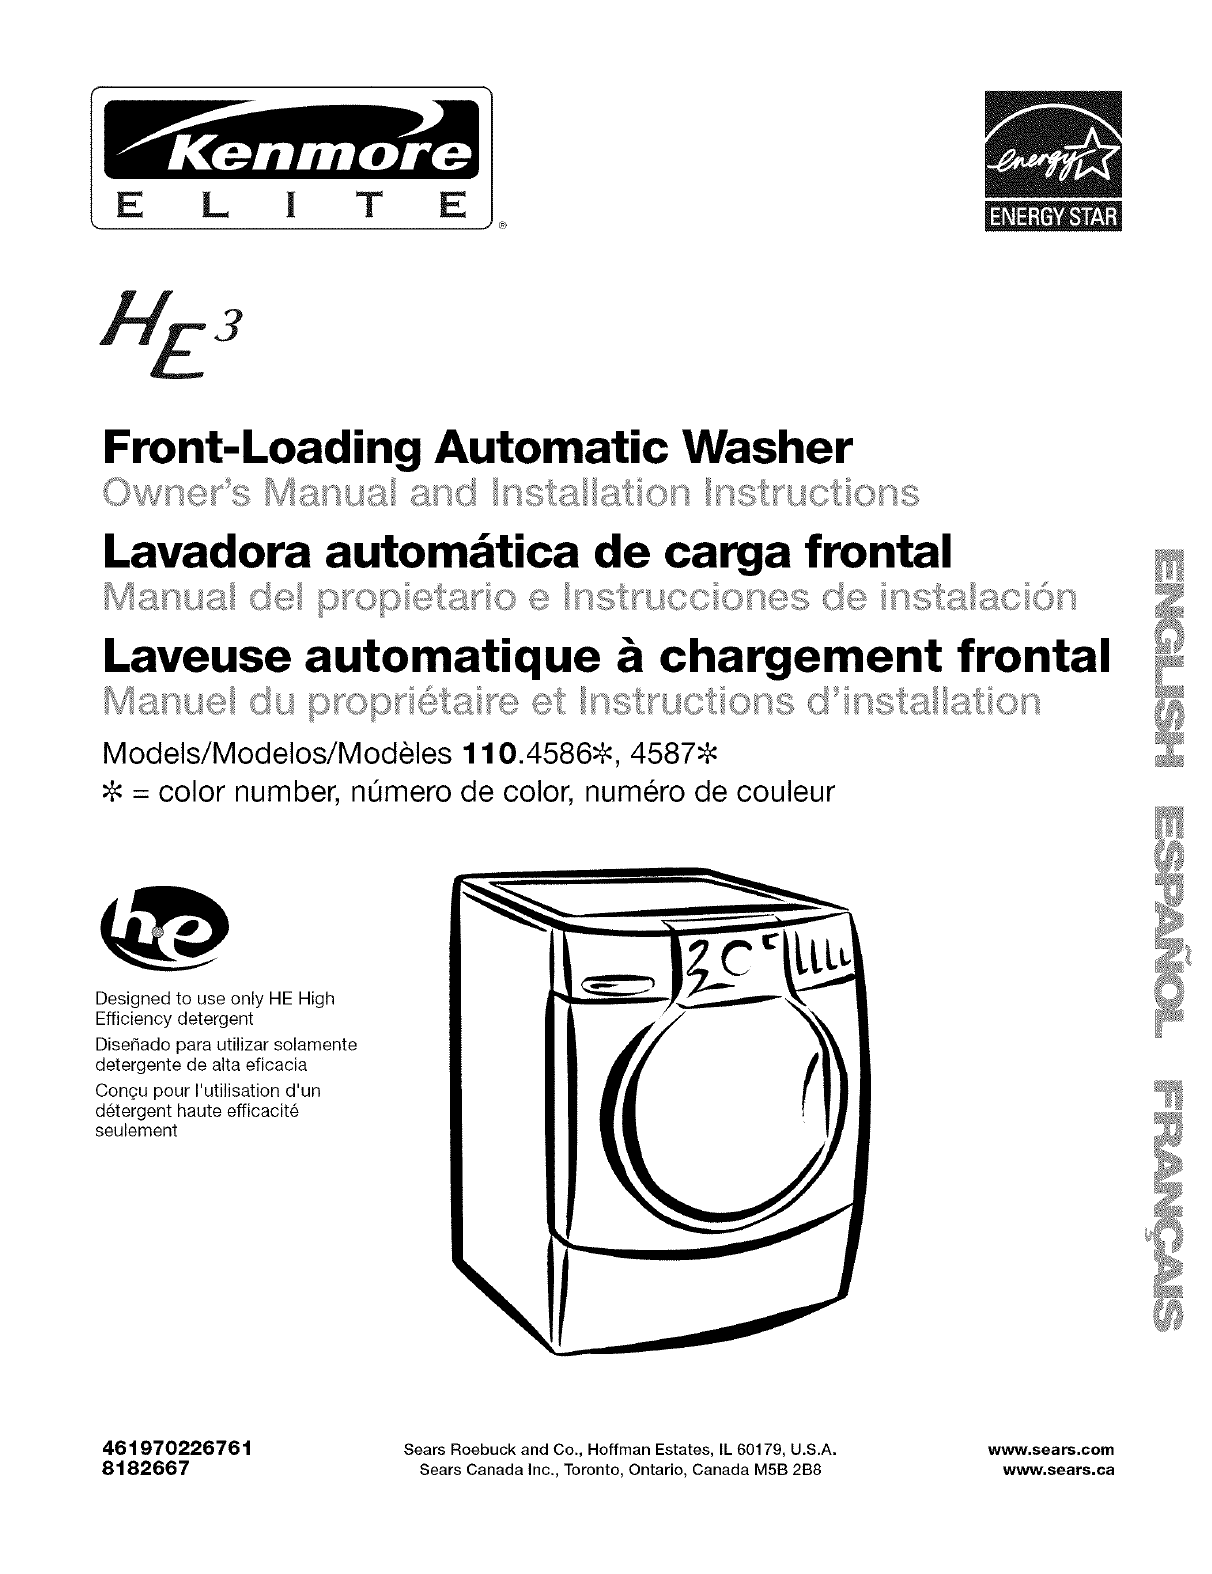 kenmore elite 11045862401 user manual residential washer manuals and rh usermanual wiki kenmore super capacity 3.5 quiet tumble action washer manual Kenmore Front Load Washer